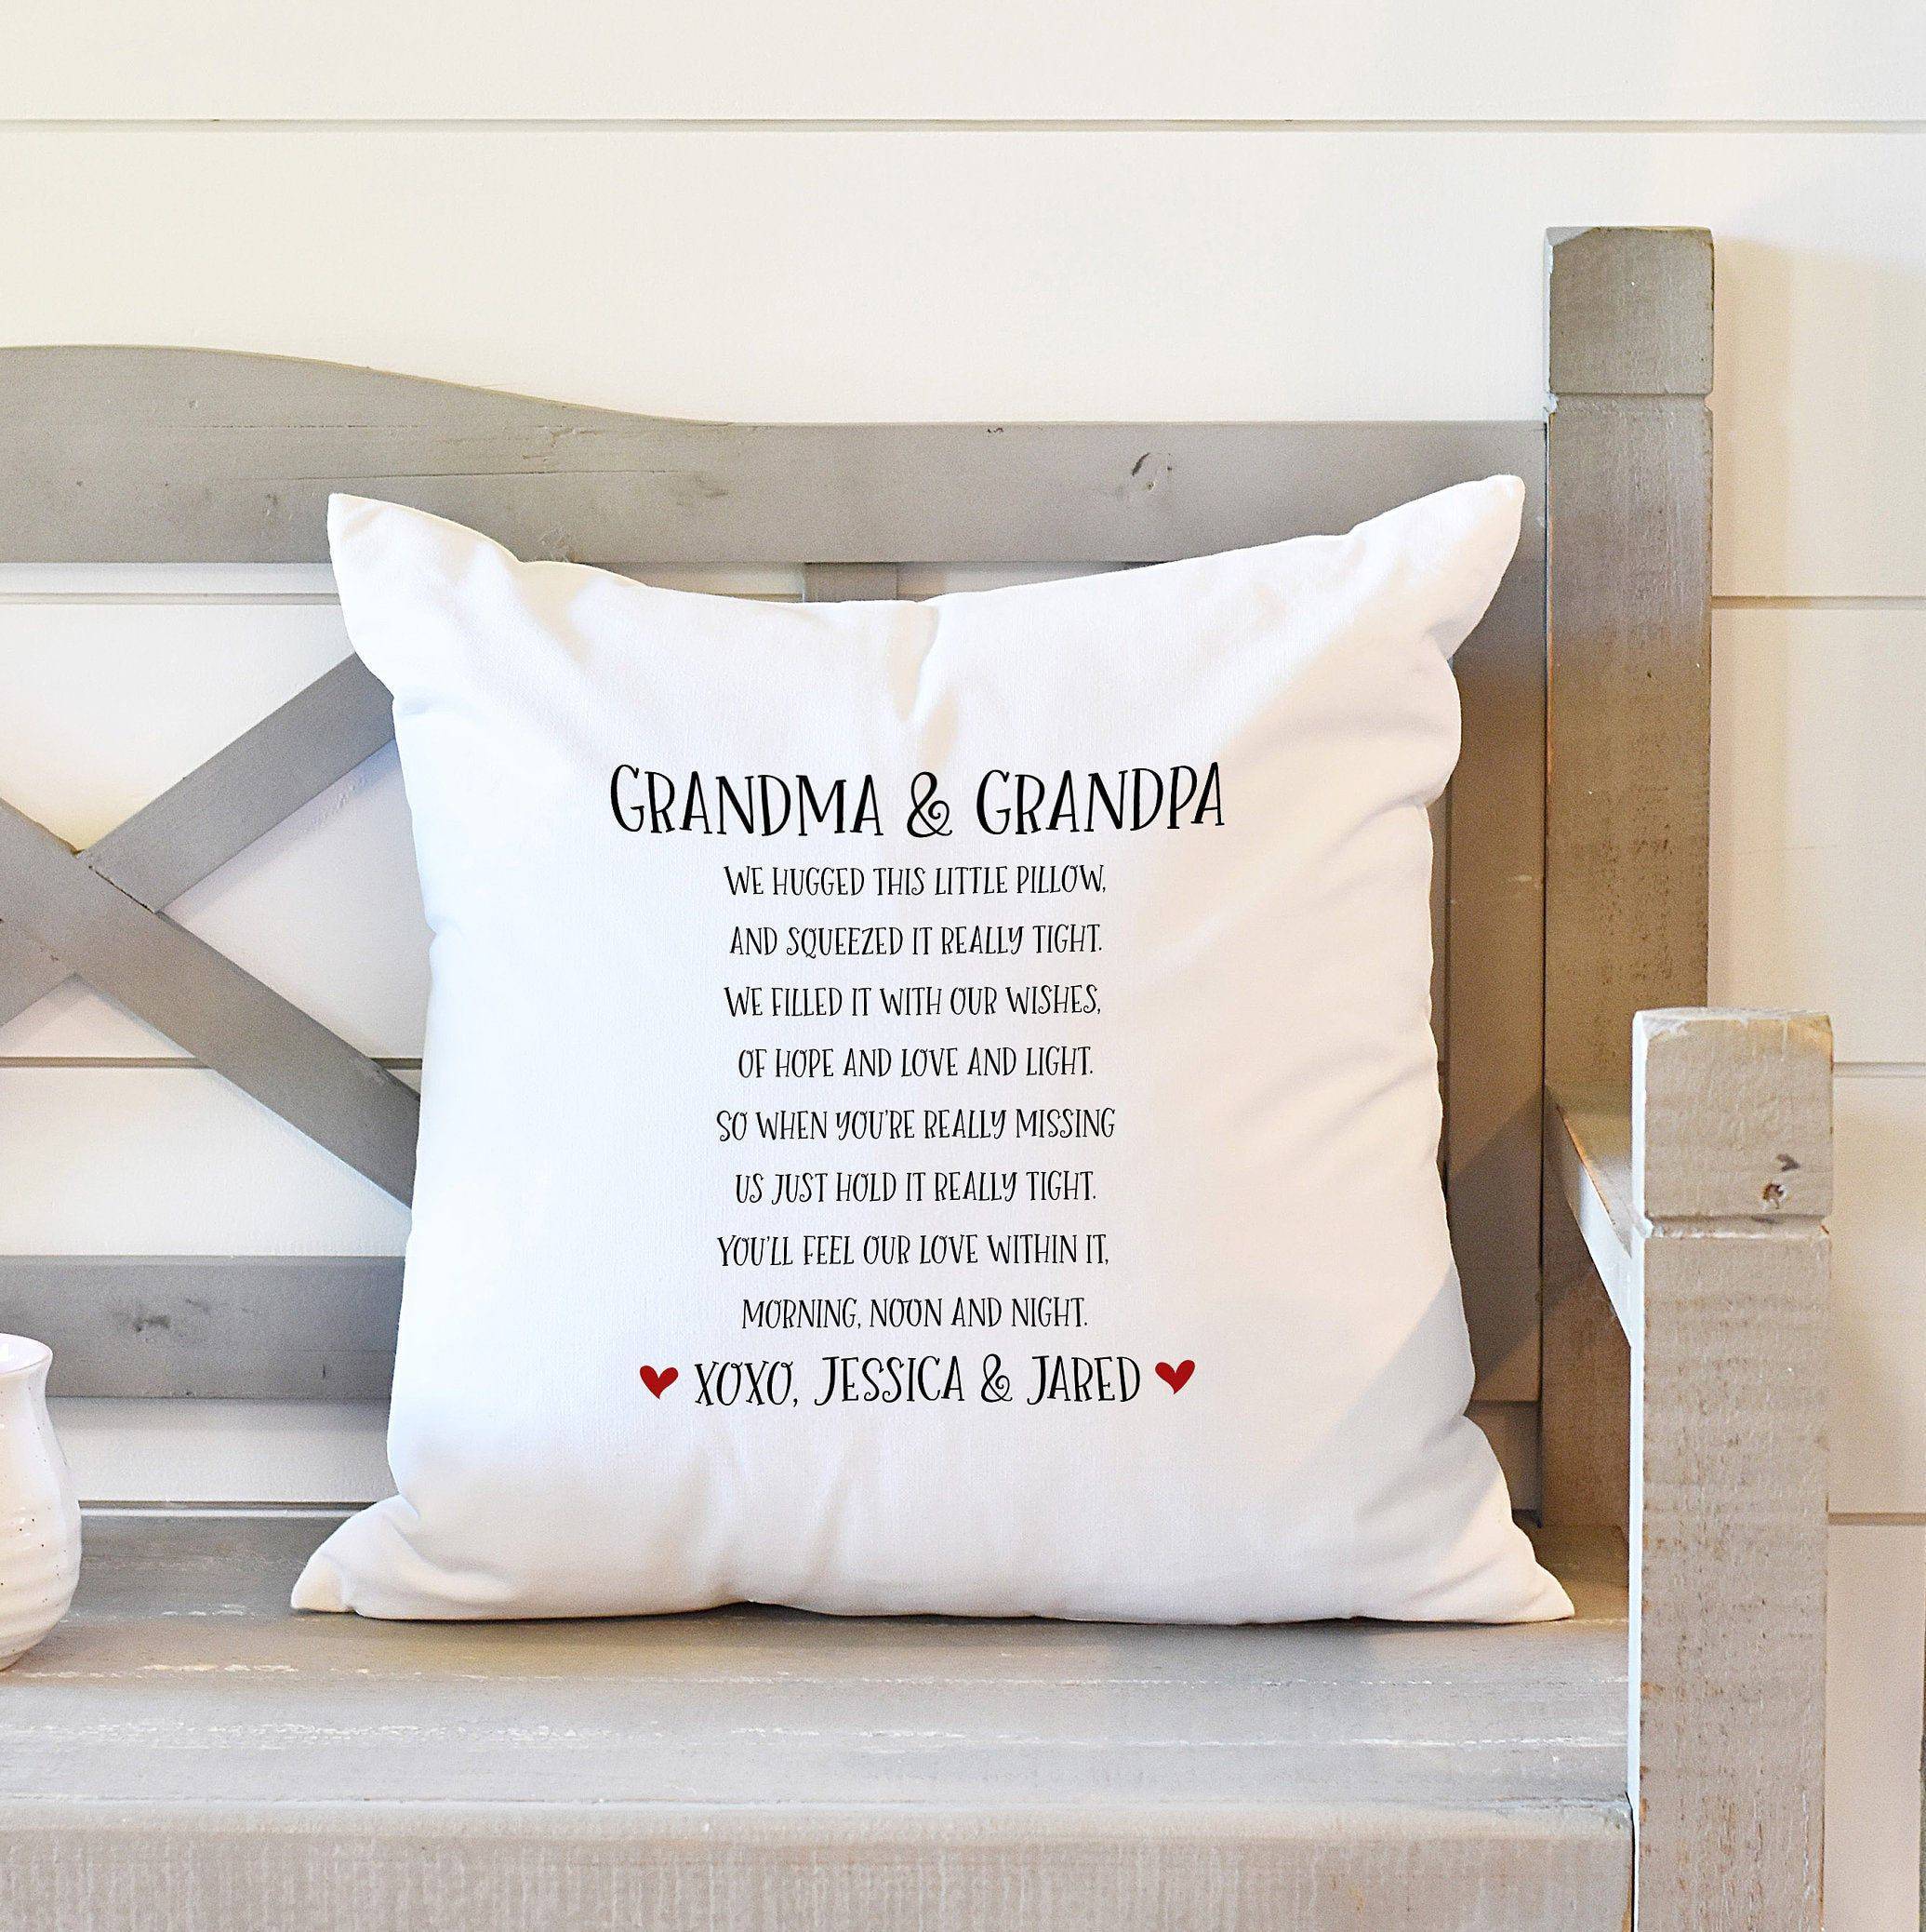 Personalized Filled With Love Pillow, Gift for Grandparents, Gift for Great-Grandparents, Gift from Grandkids, Decorative Throw Pillow #bestgiftsforgrandparents